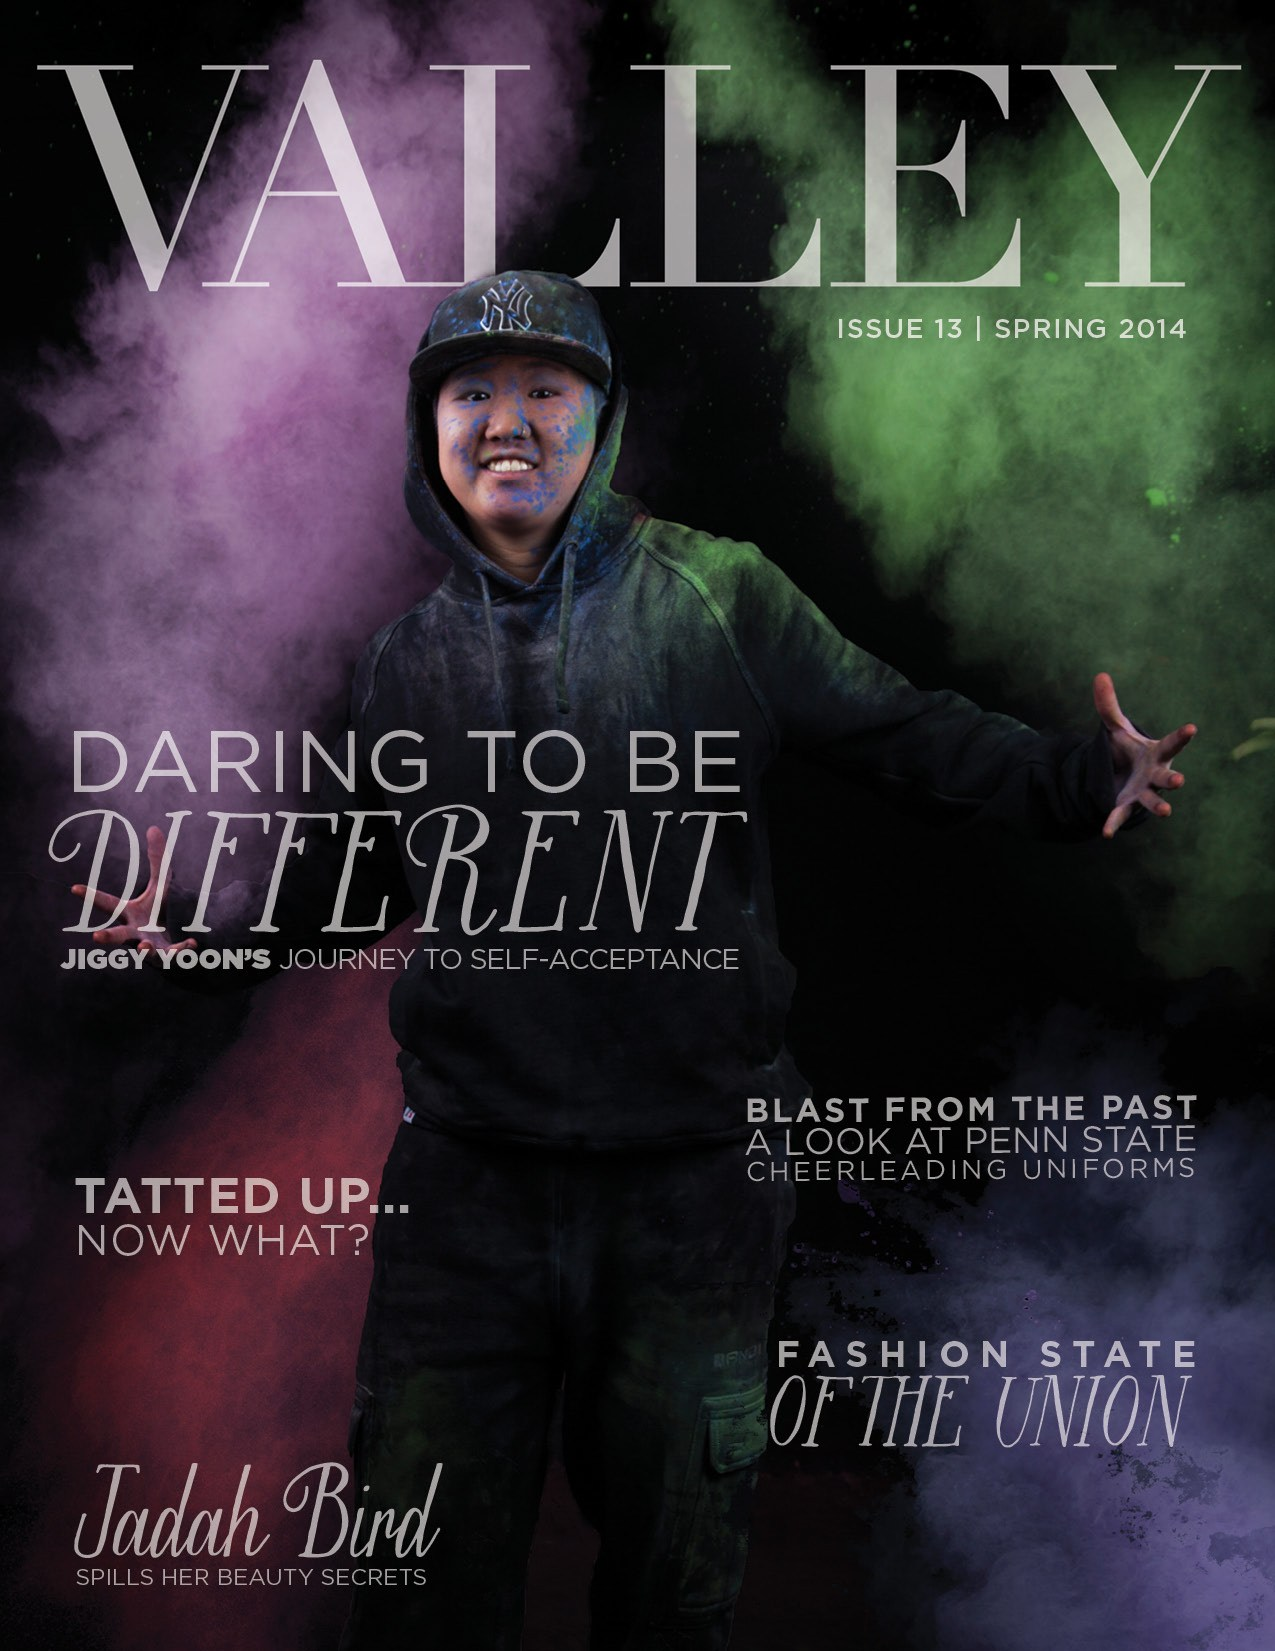 DARING TO BE DIFFERENT / VALLEY MAGAZINE - Jiggy's story is one of determination, heartbreak and hard work. Through family struggles, fighting internal demons and having her life turned upside down, Jiggy has learned to maintain an upbeat attitude. Her ability to turn a hard times into happiness is what makes her a role model that everybody can look up to. Read More